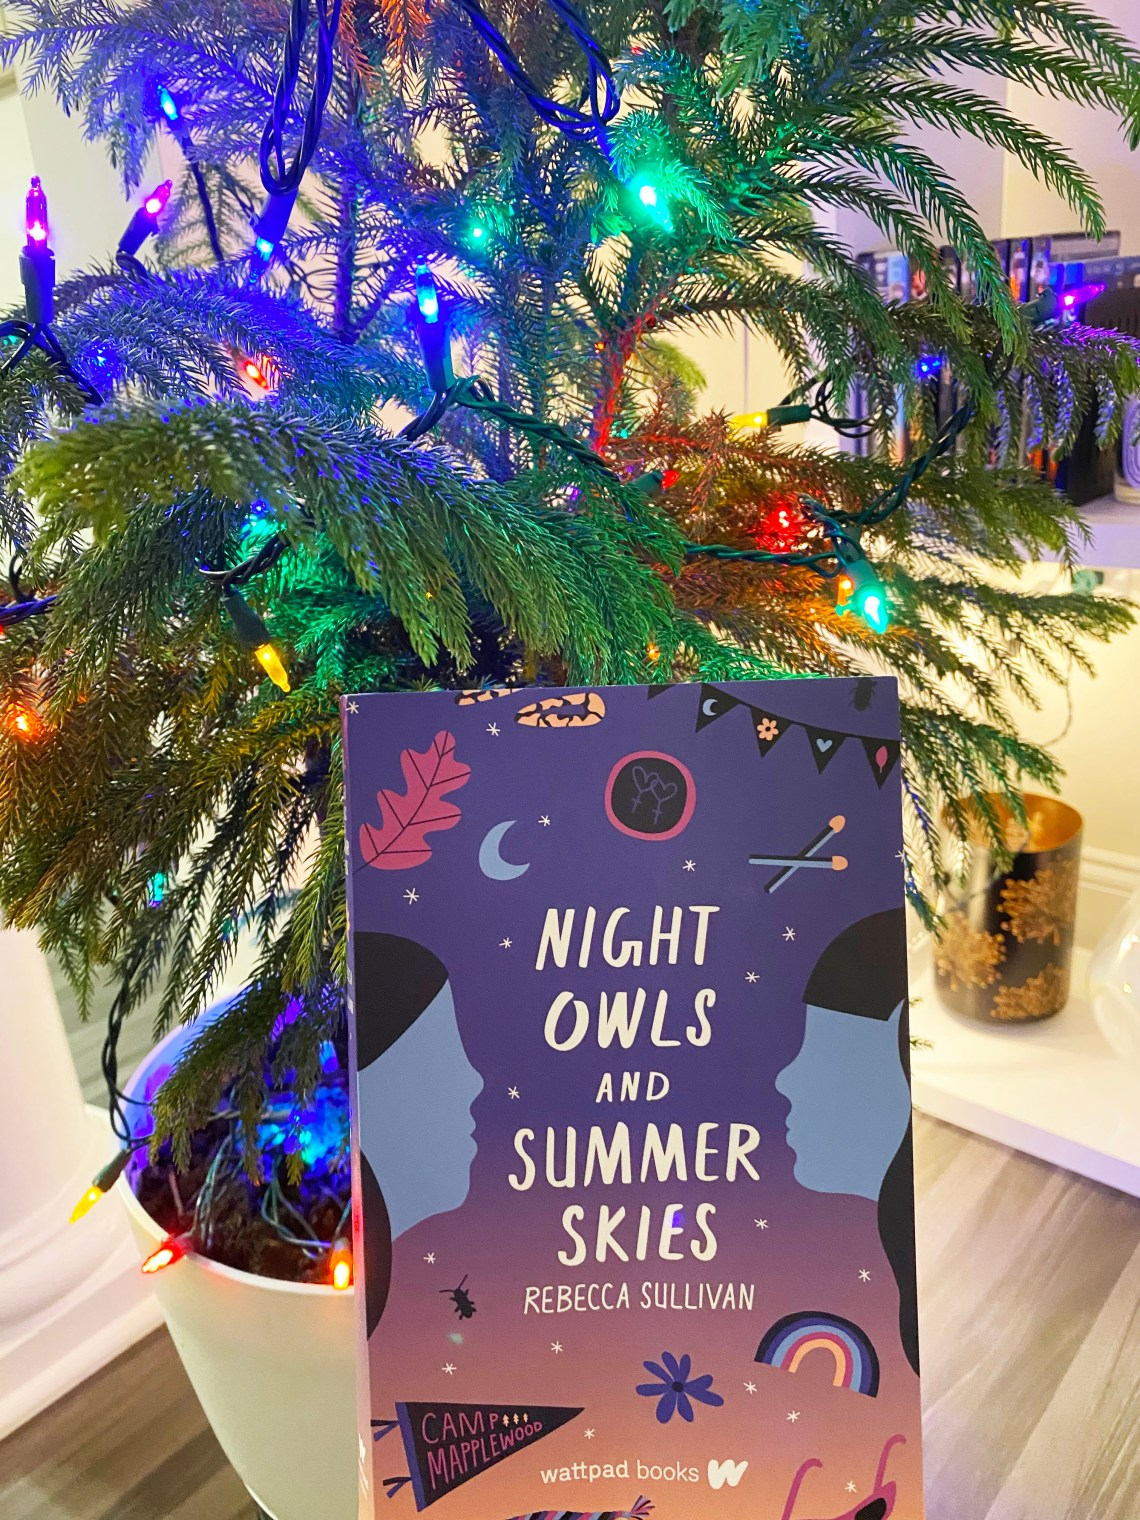 Night-Owls-and-Summer-Skies